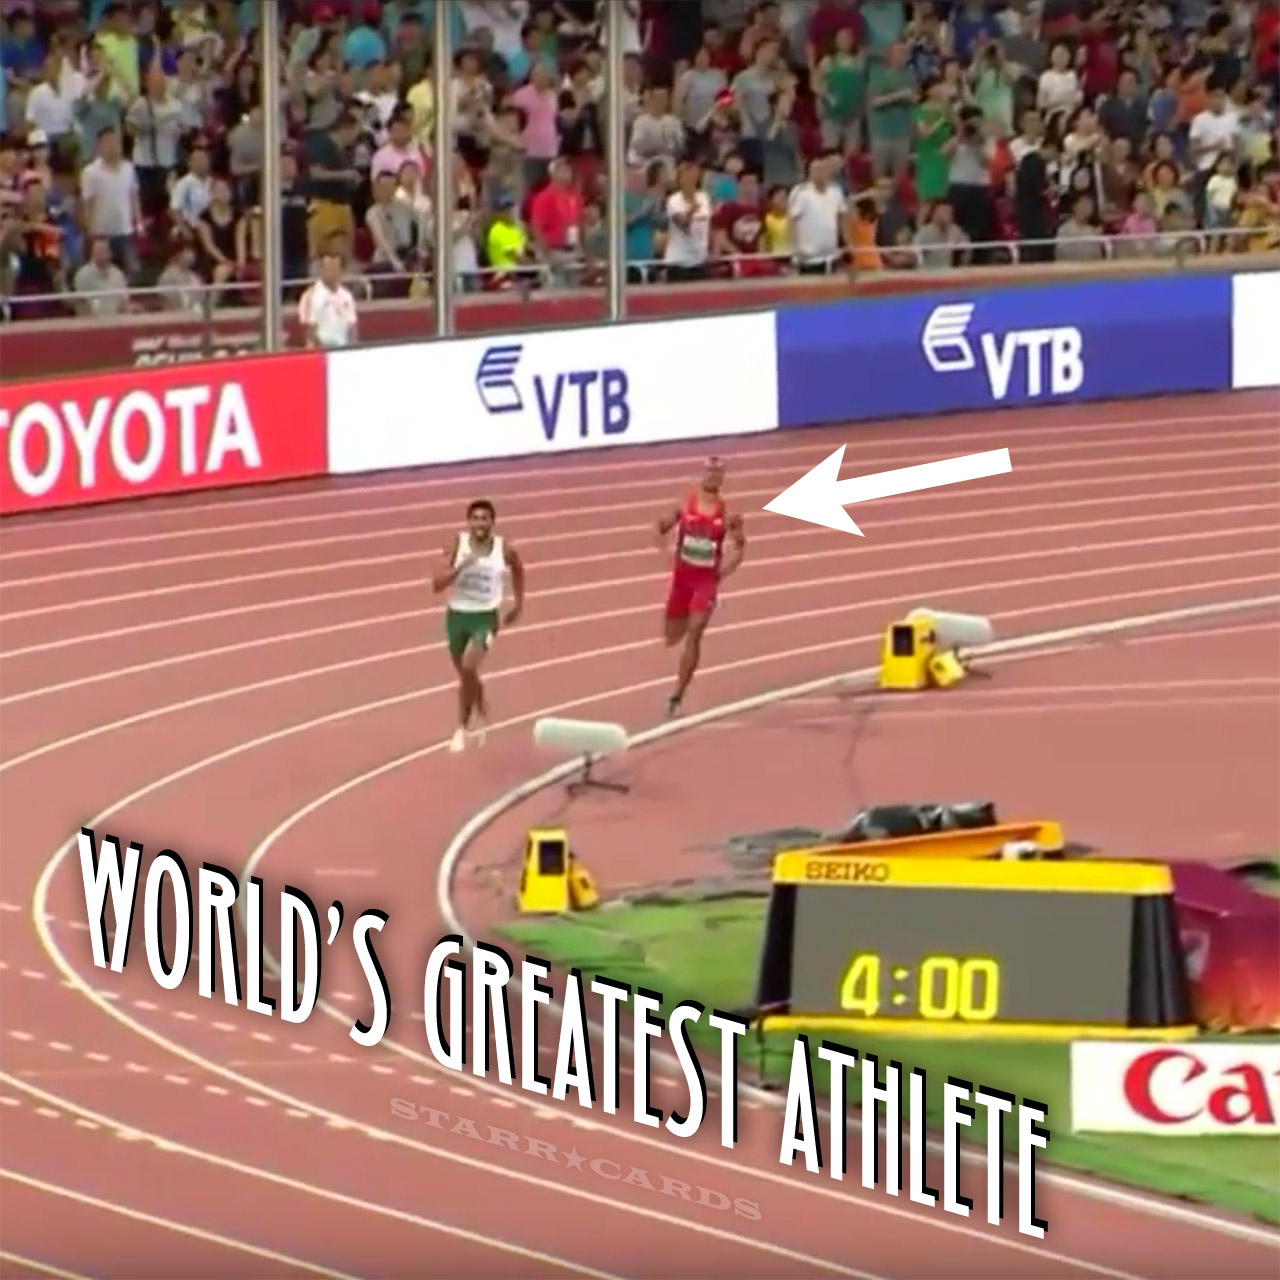 World's Greatest Athlete Ashton Eaton sets new decathlon world record